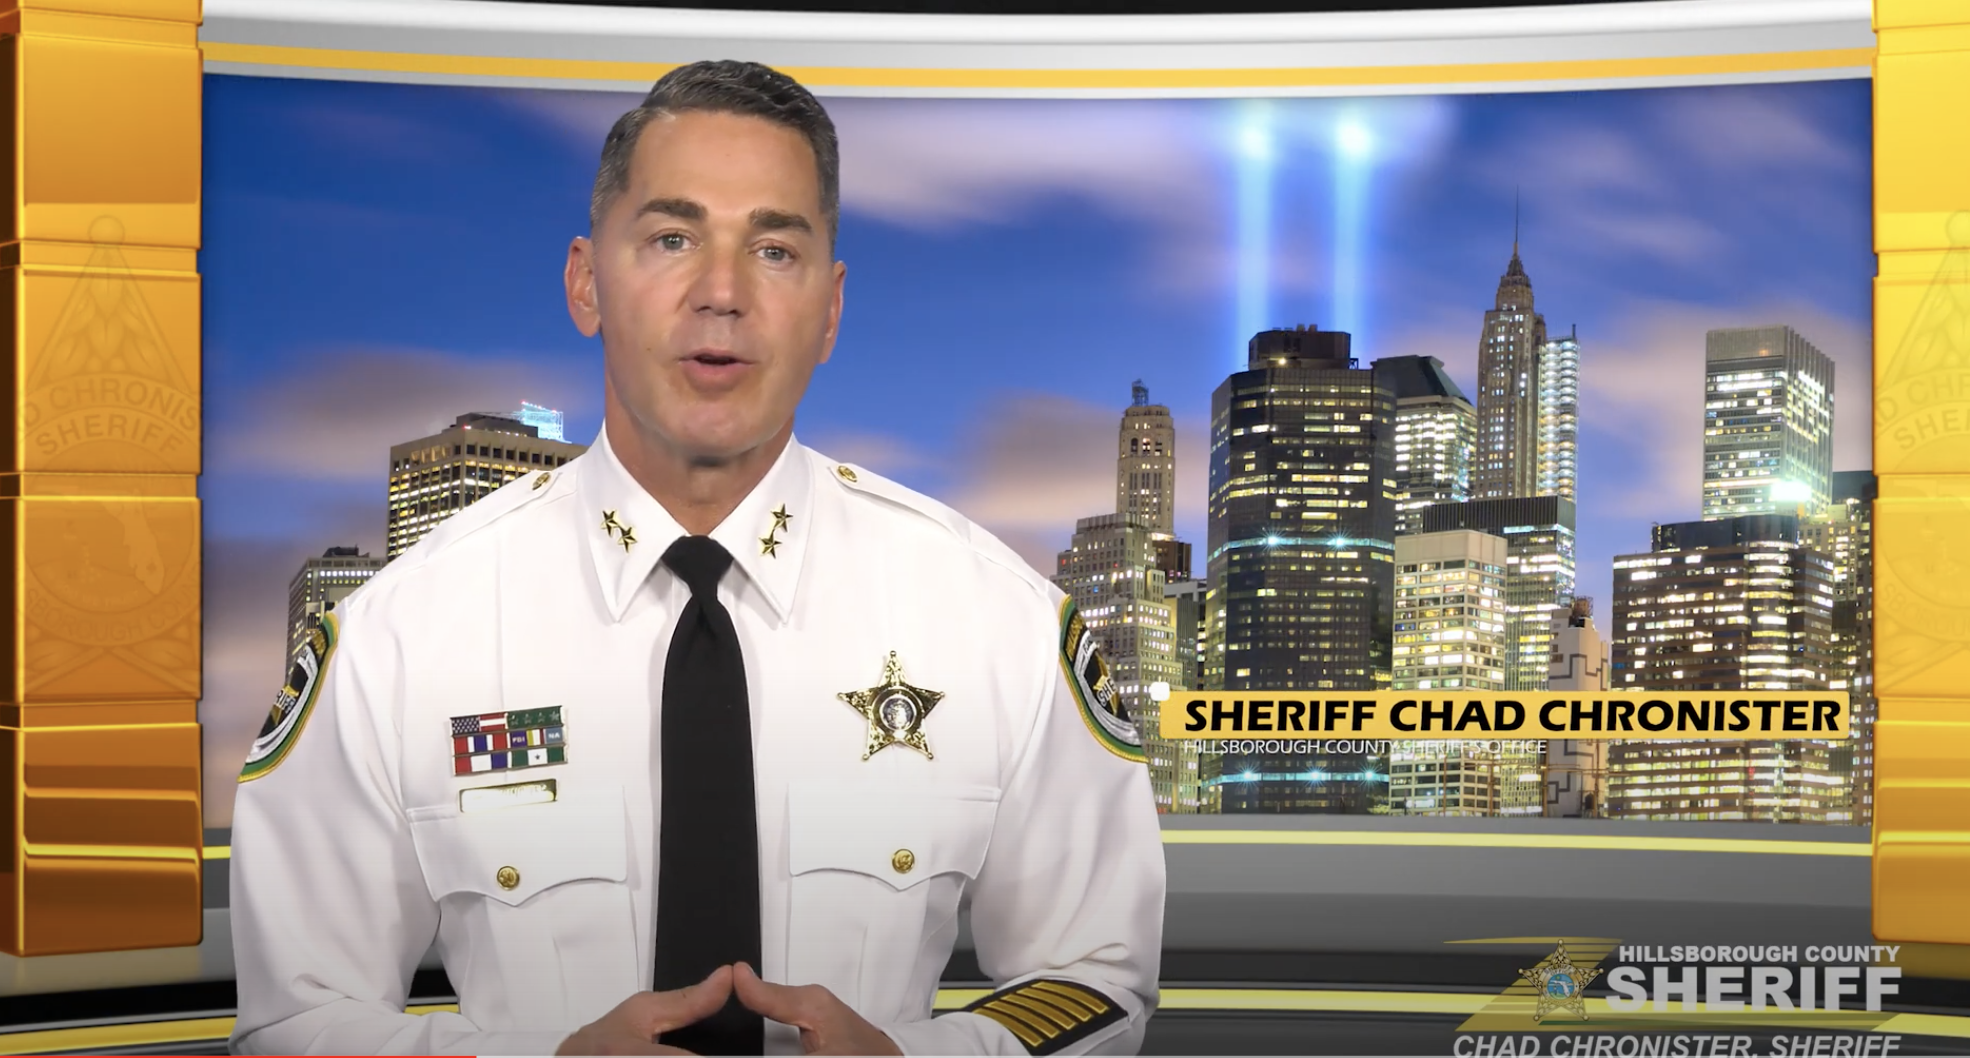 Sheriff Chad Chronister leads 9/11 commemoration